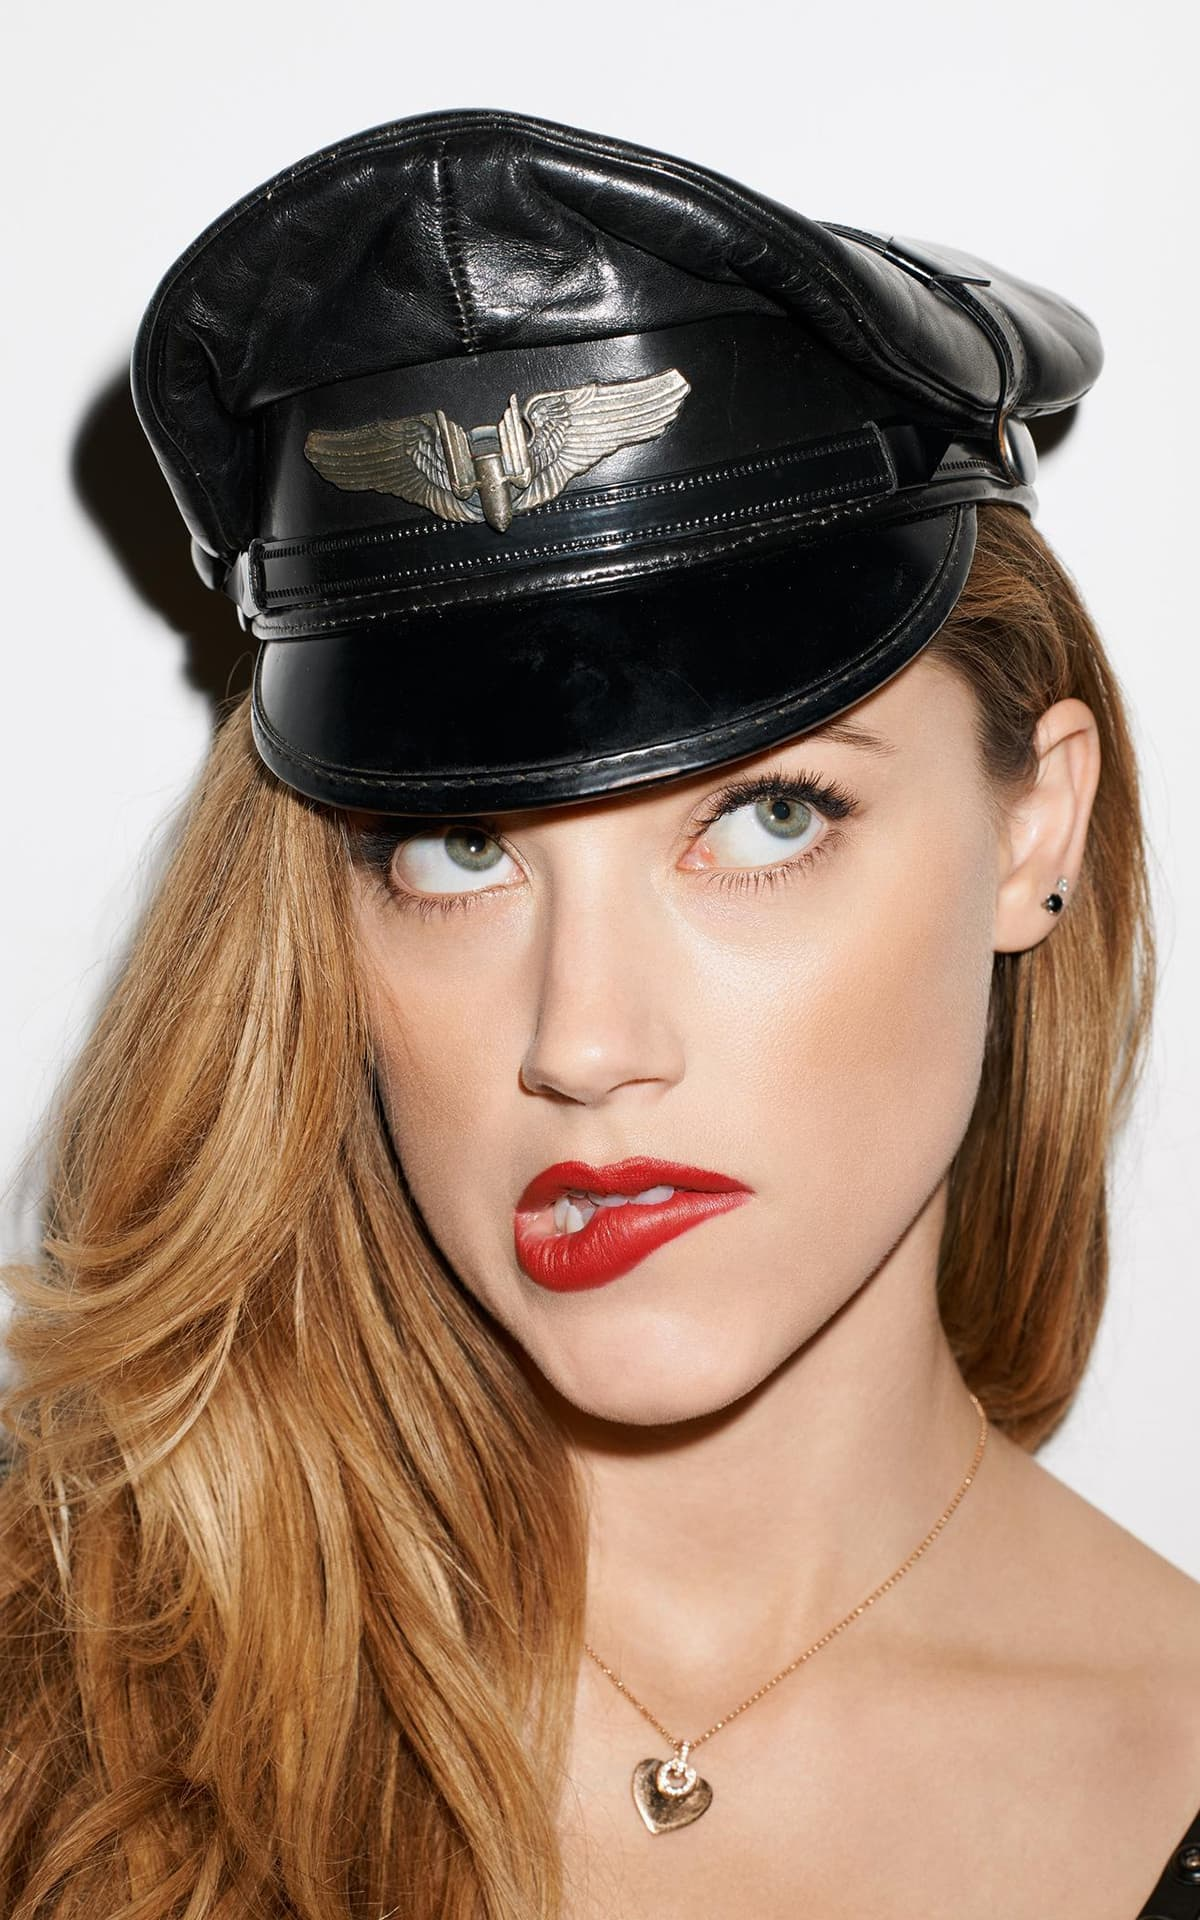 Amber Heard for Android picture